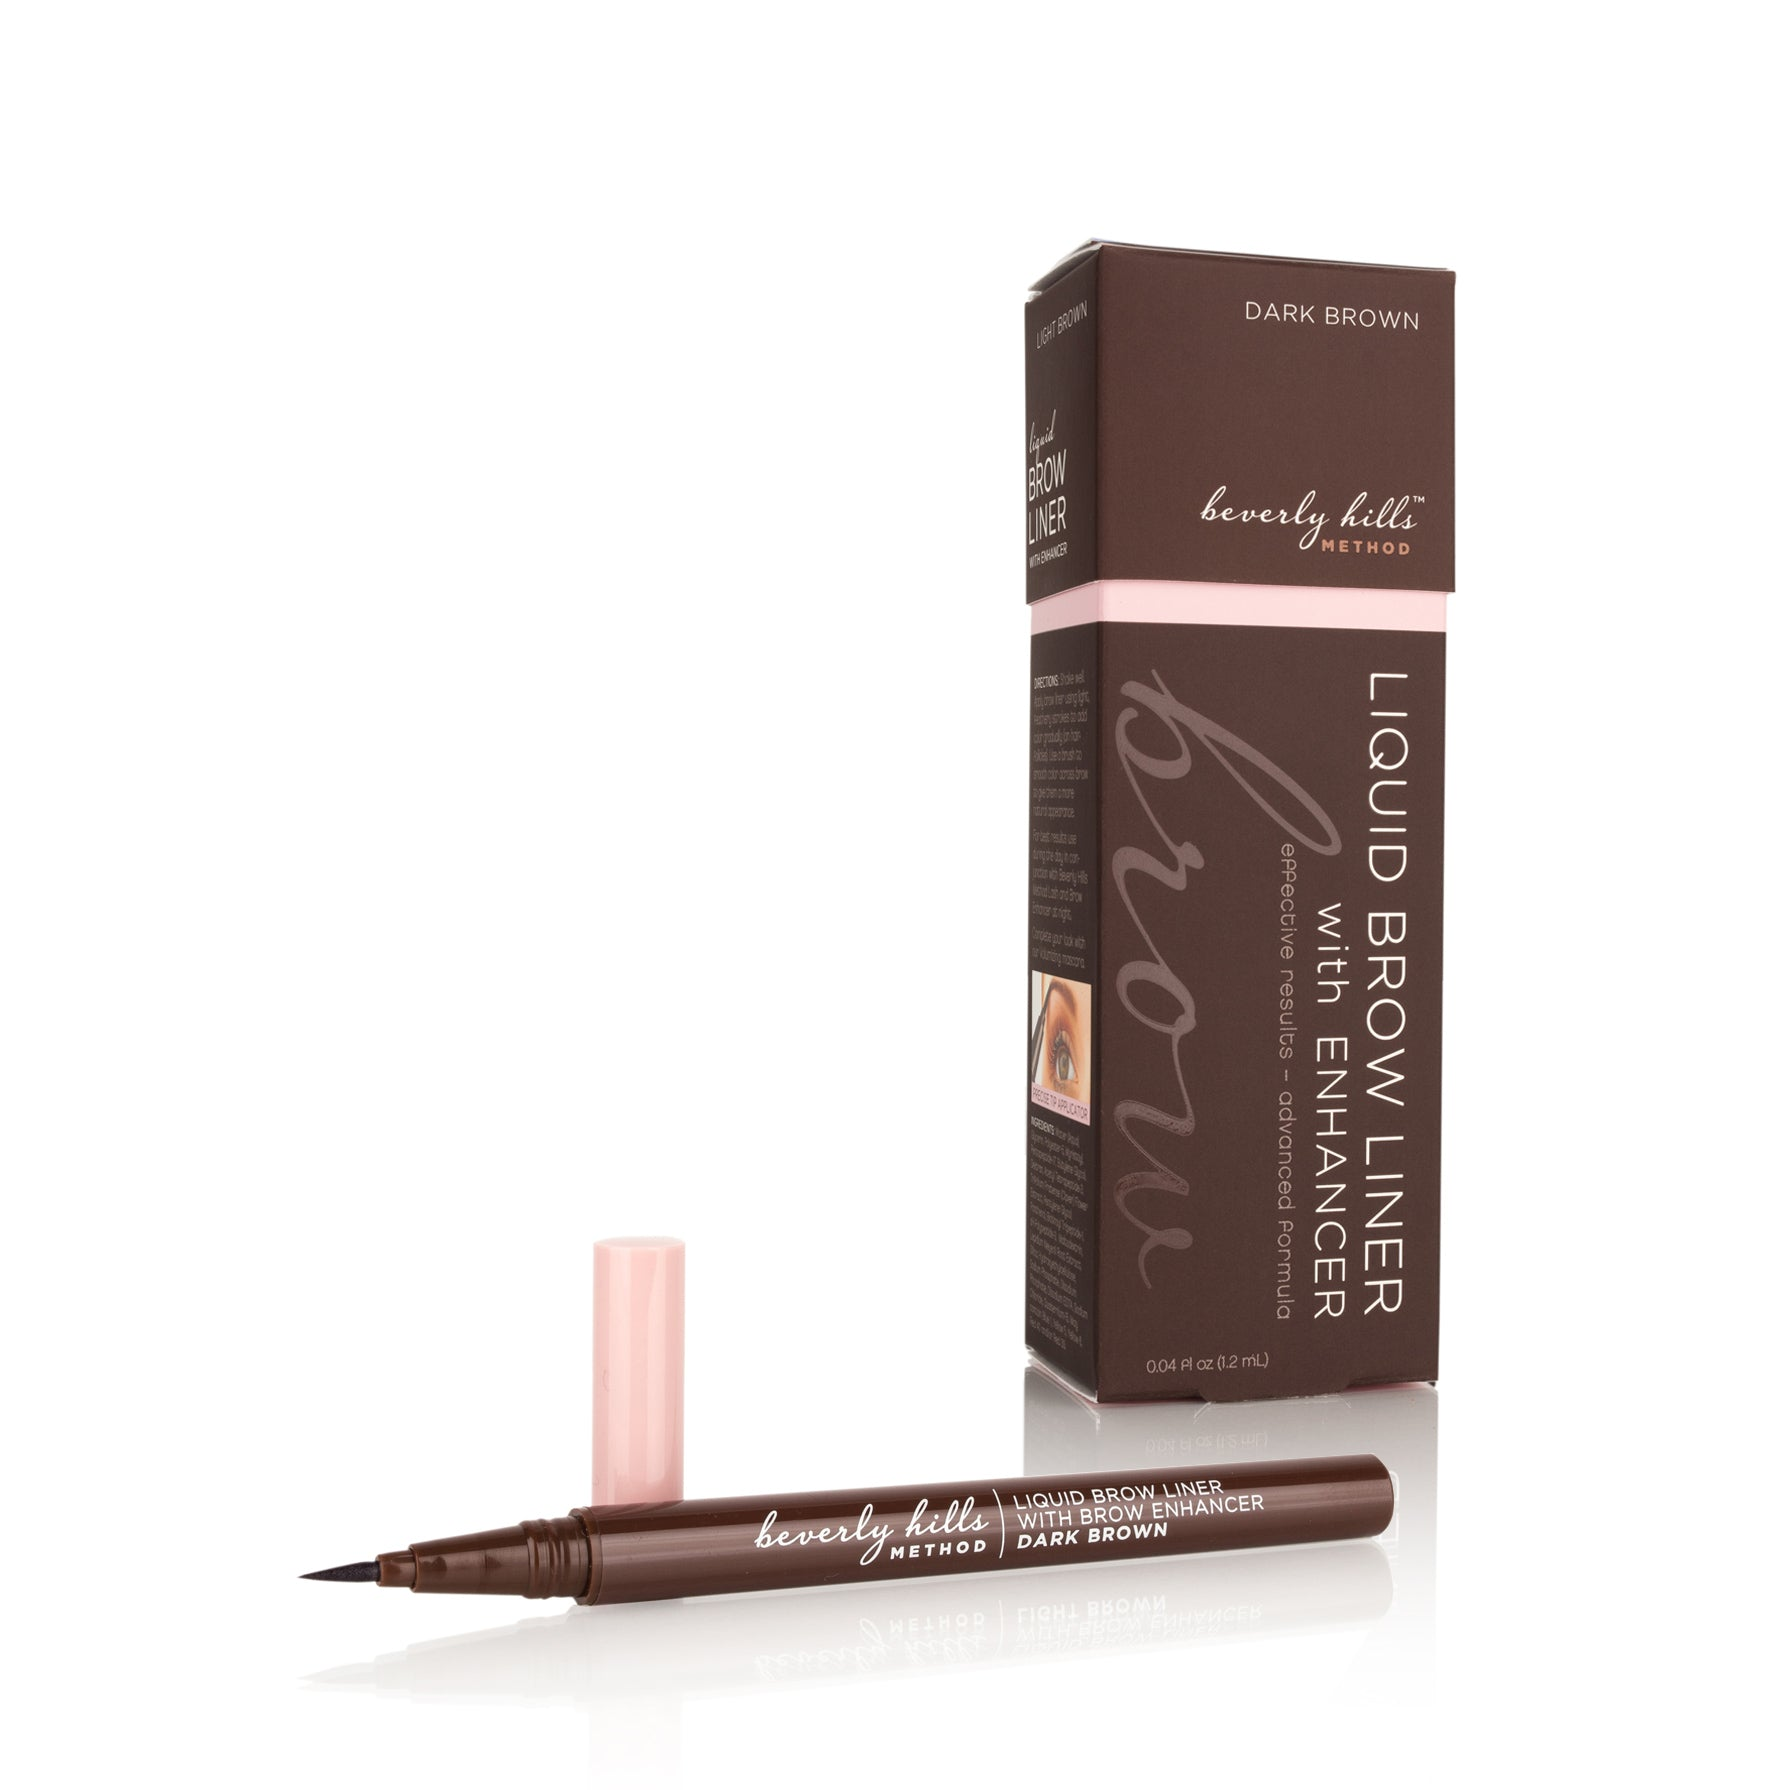 2in1 Liquid Brow Liner with Brow Growth Enhancer - Dark Brown